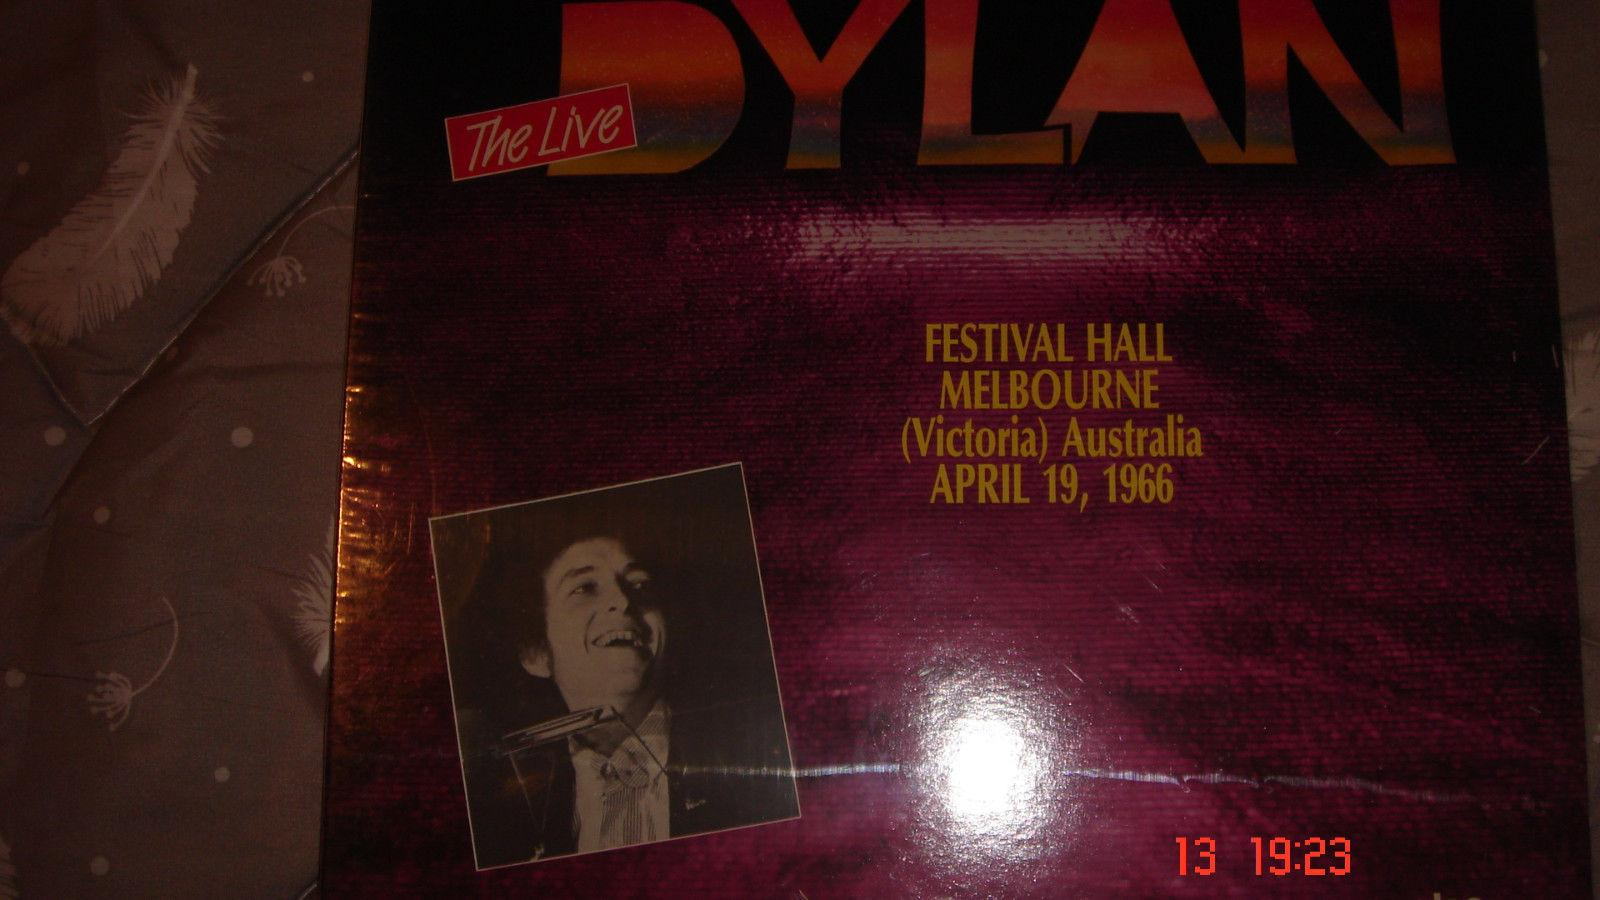 BOB DYLAN §§ FESTIVAL HALL MELBOURNE 1966 §§ MADE IN ITALY §§ 1988 §§ NEUF